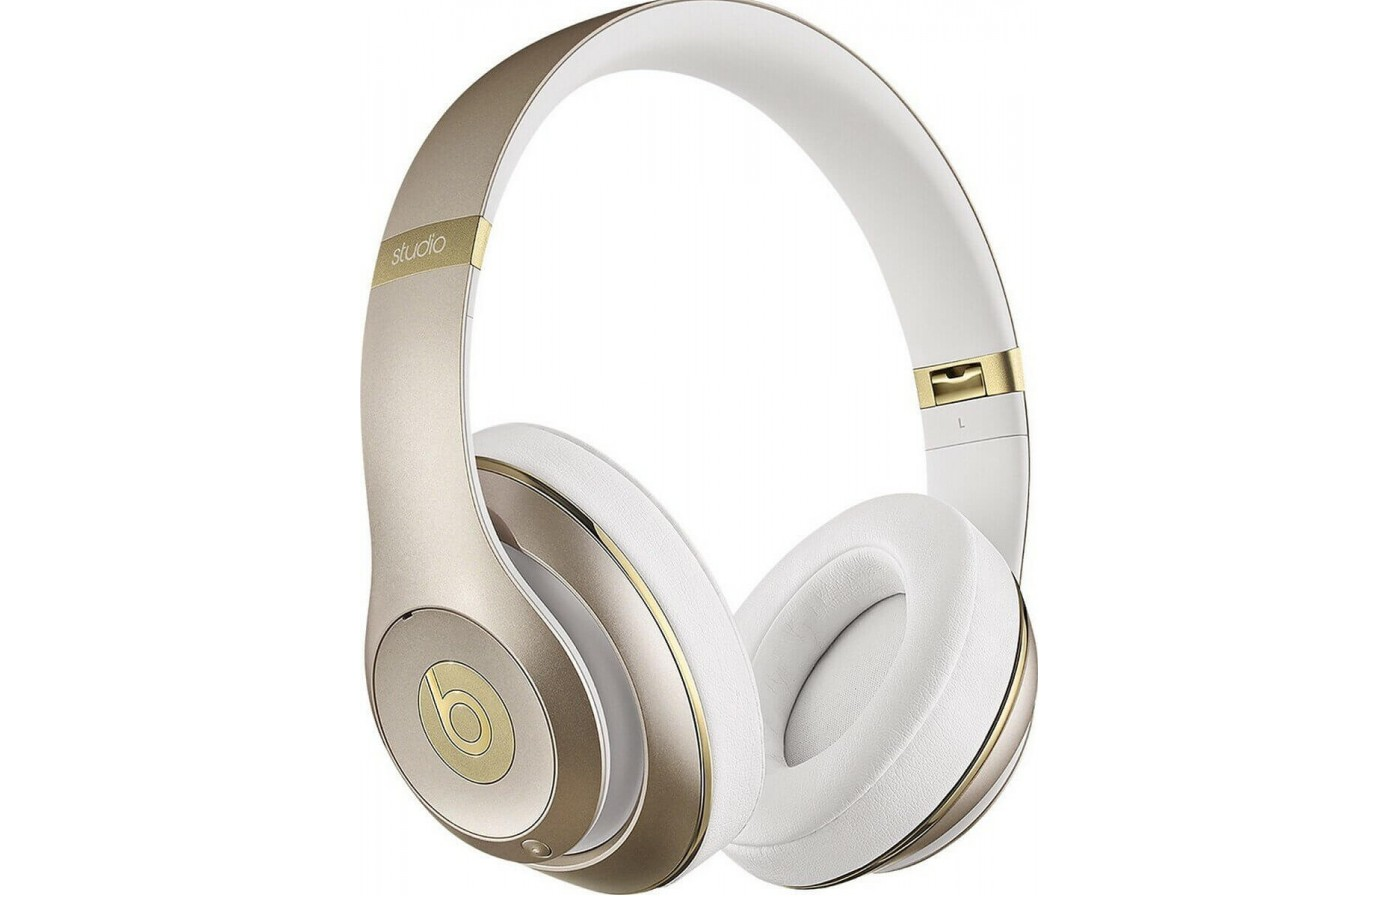 The Beats Studio 2 headphones feature adaptive noise canceling technology